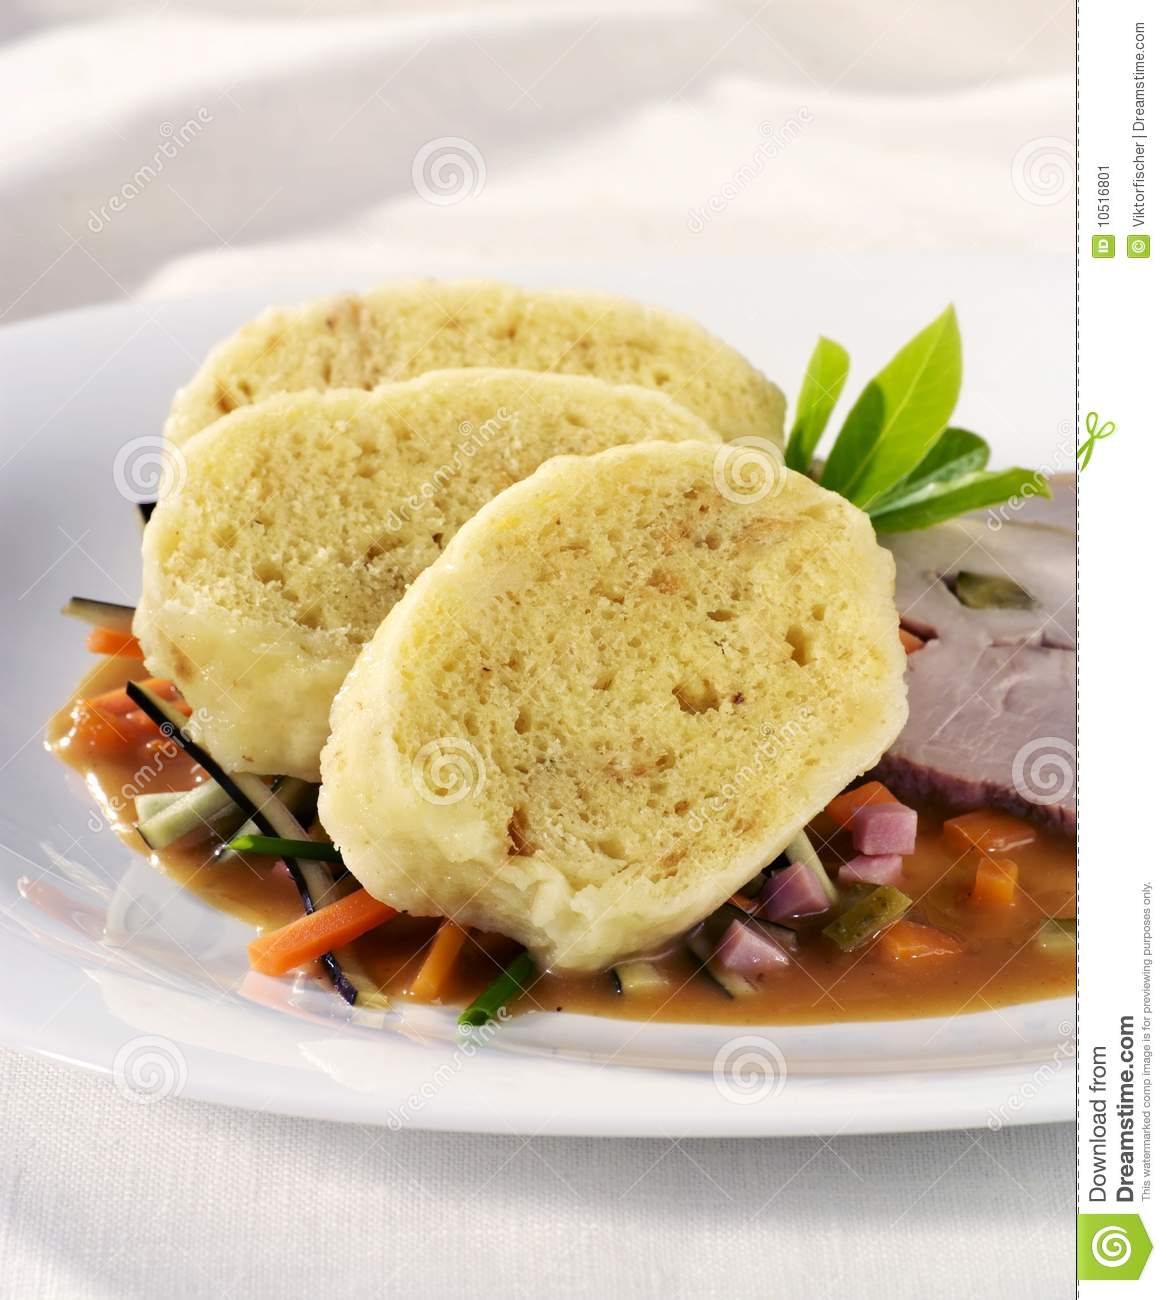 Bread Dumplings Stock Image.